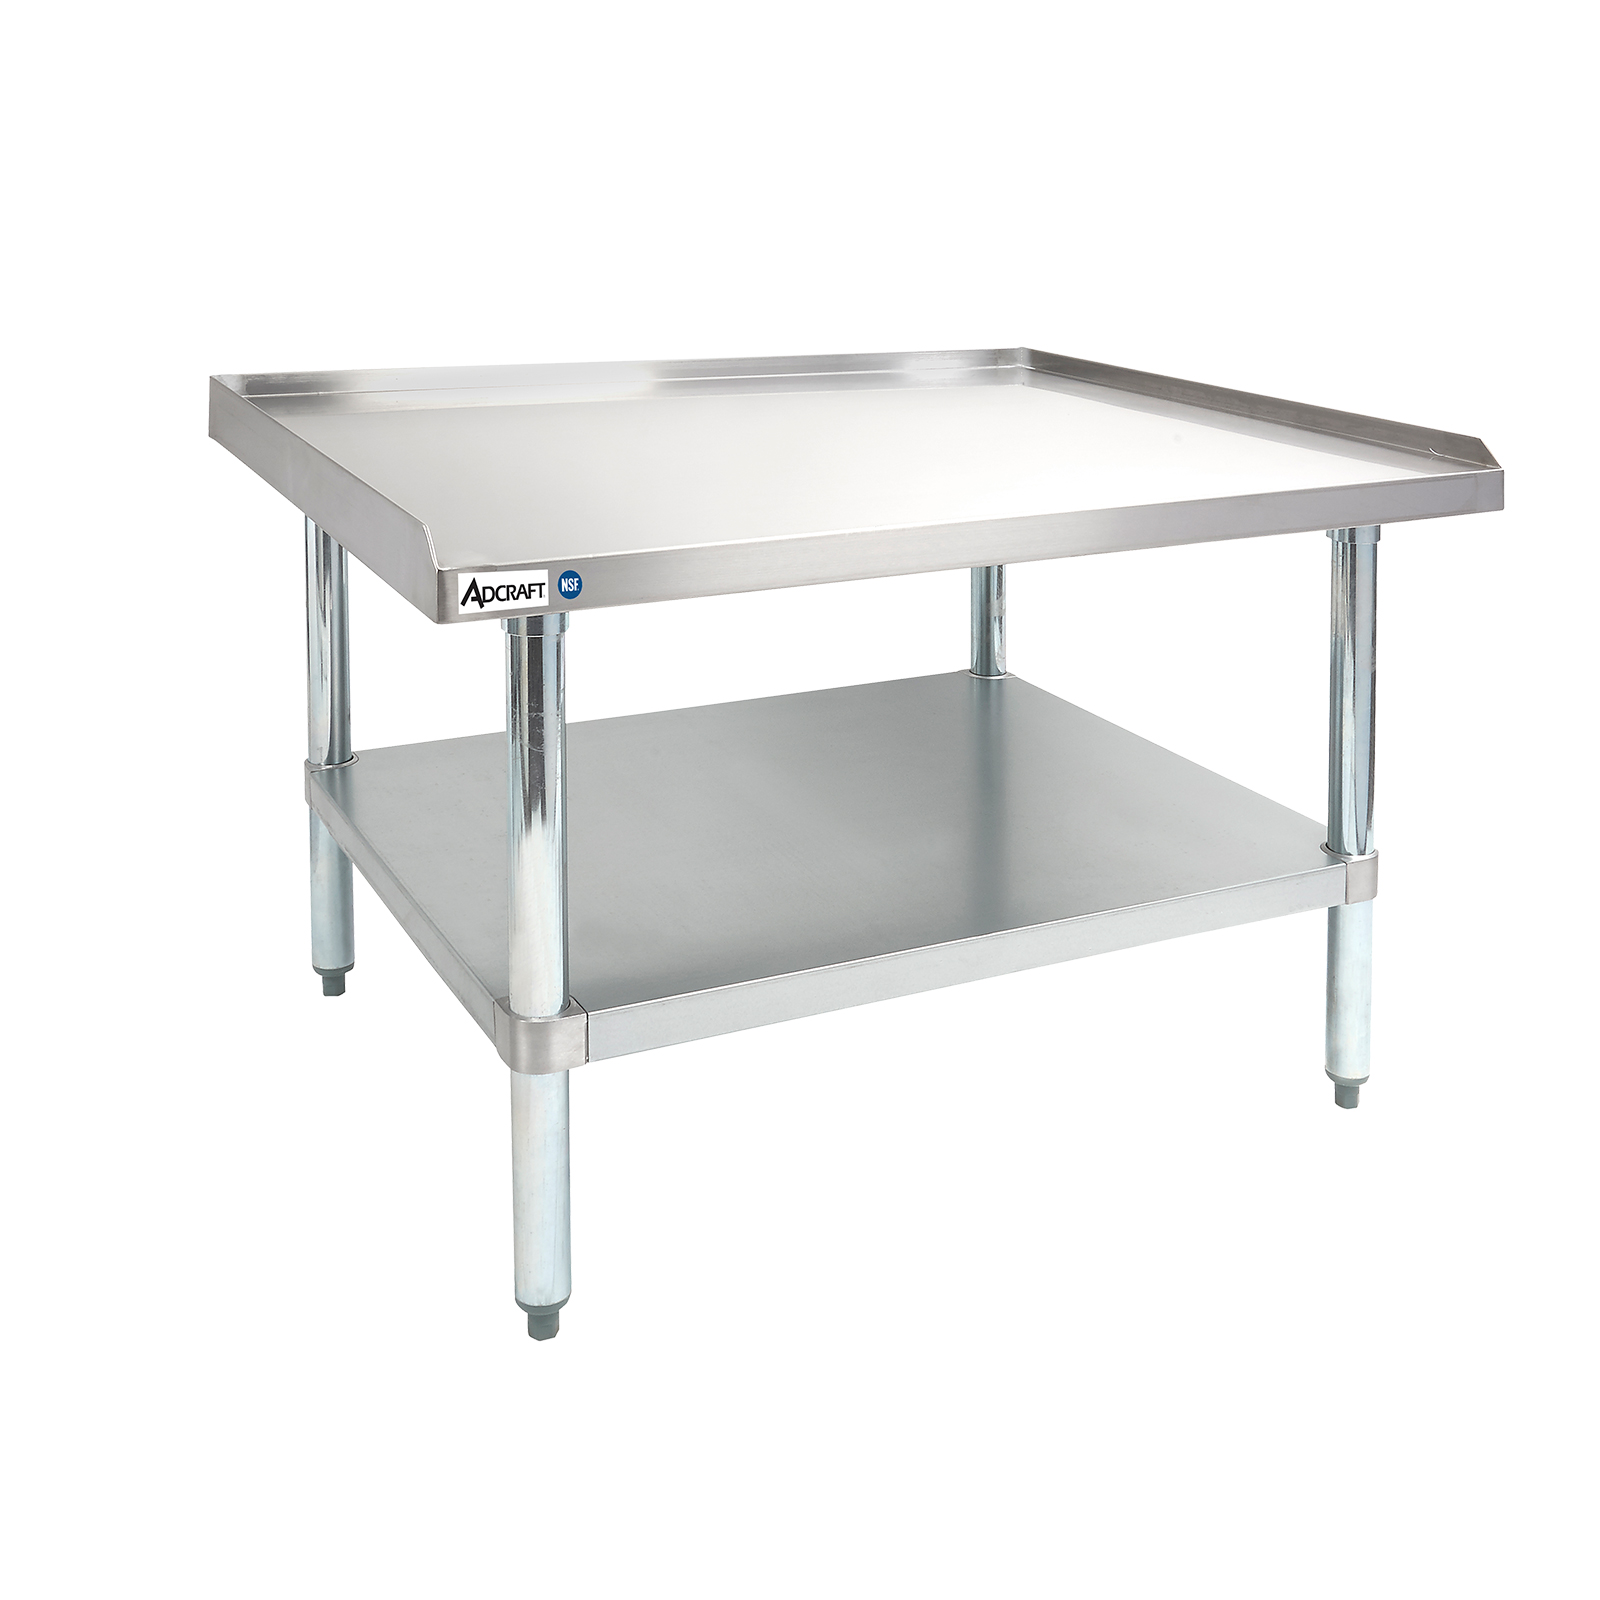 Admiral Craft ES-2424 equipment stand, for countertop cooking